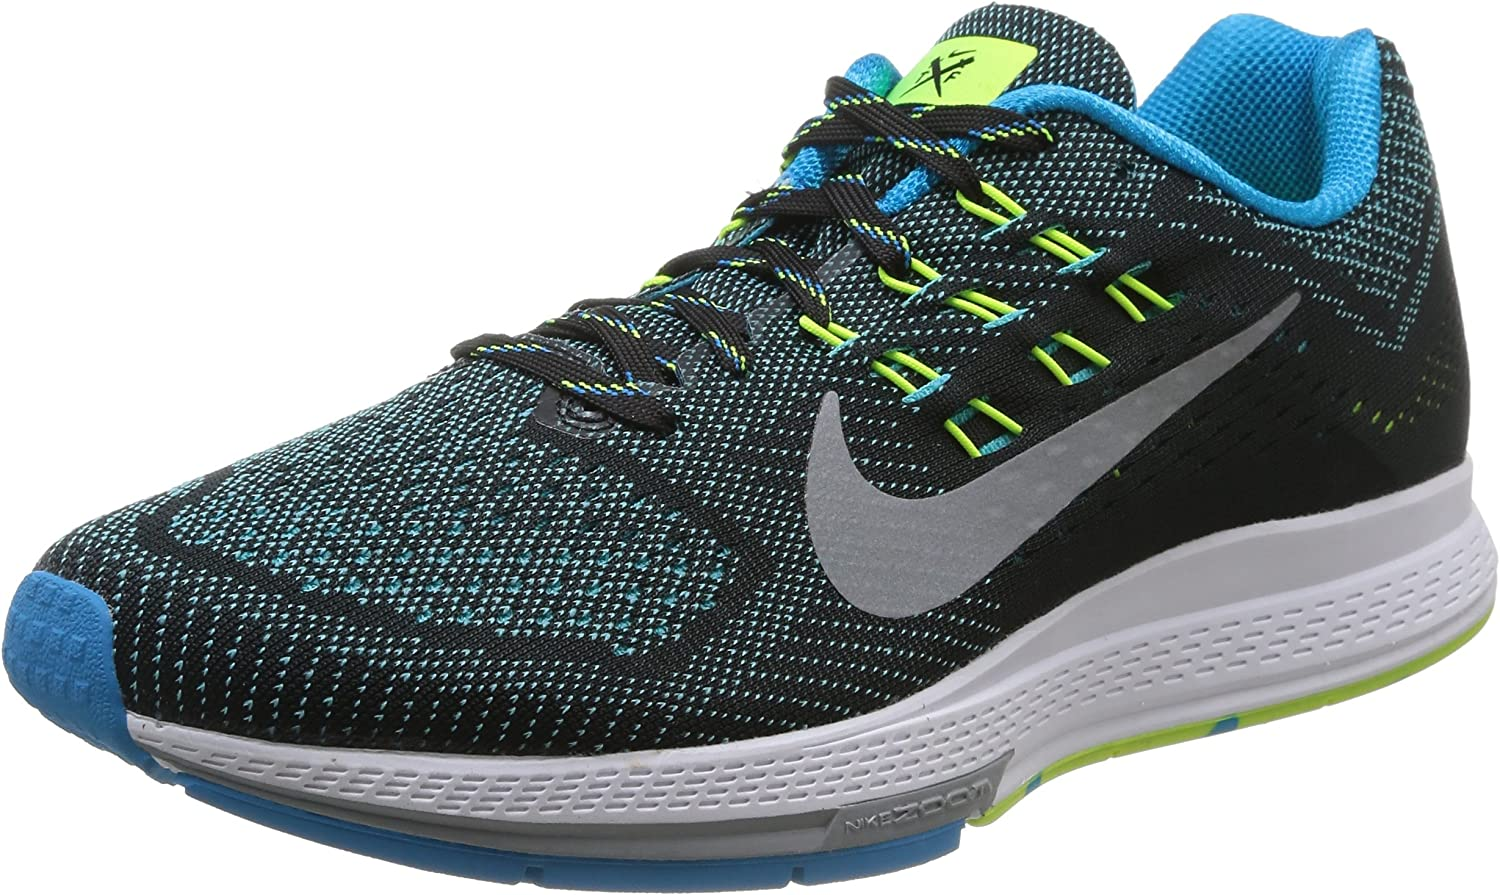 Isla Stewart Morbosidad Despertar  Nike Air Zoom Structure 18, Men's Running Shoes: Amazon.co.uk: Shoes & Bags